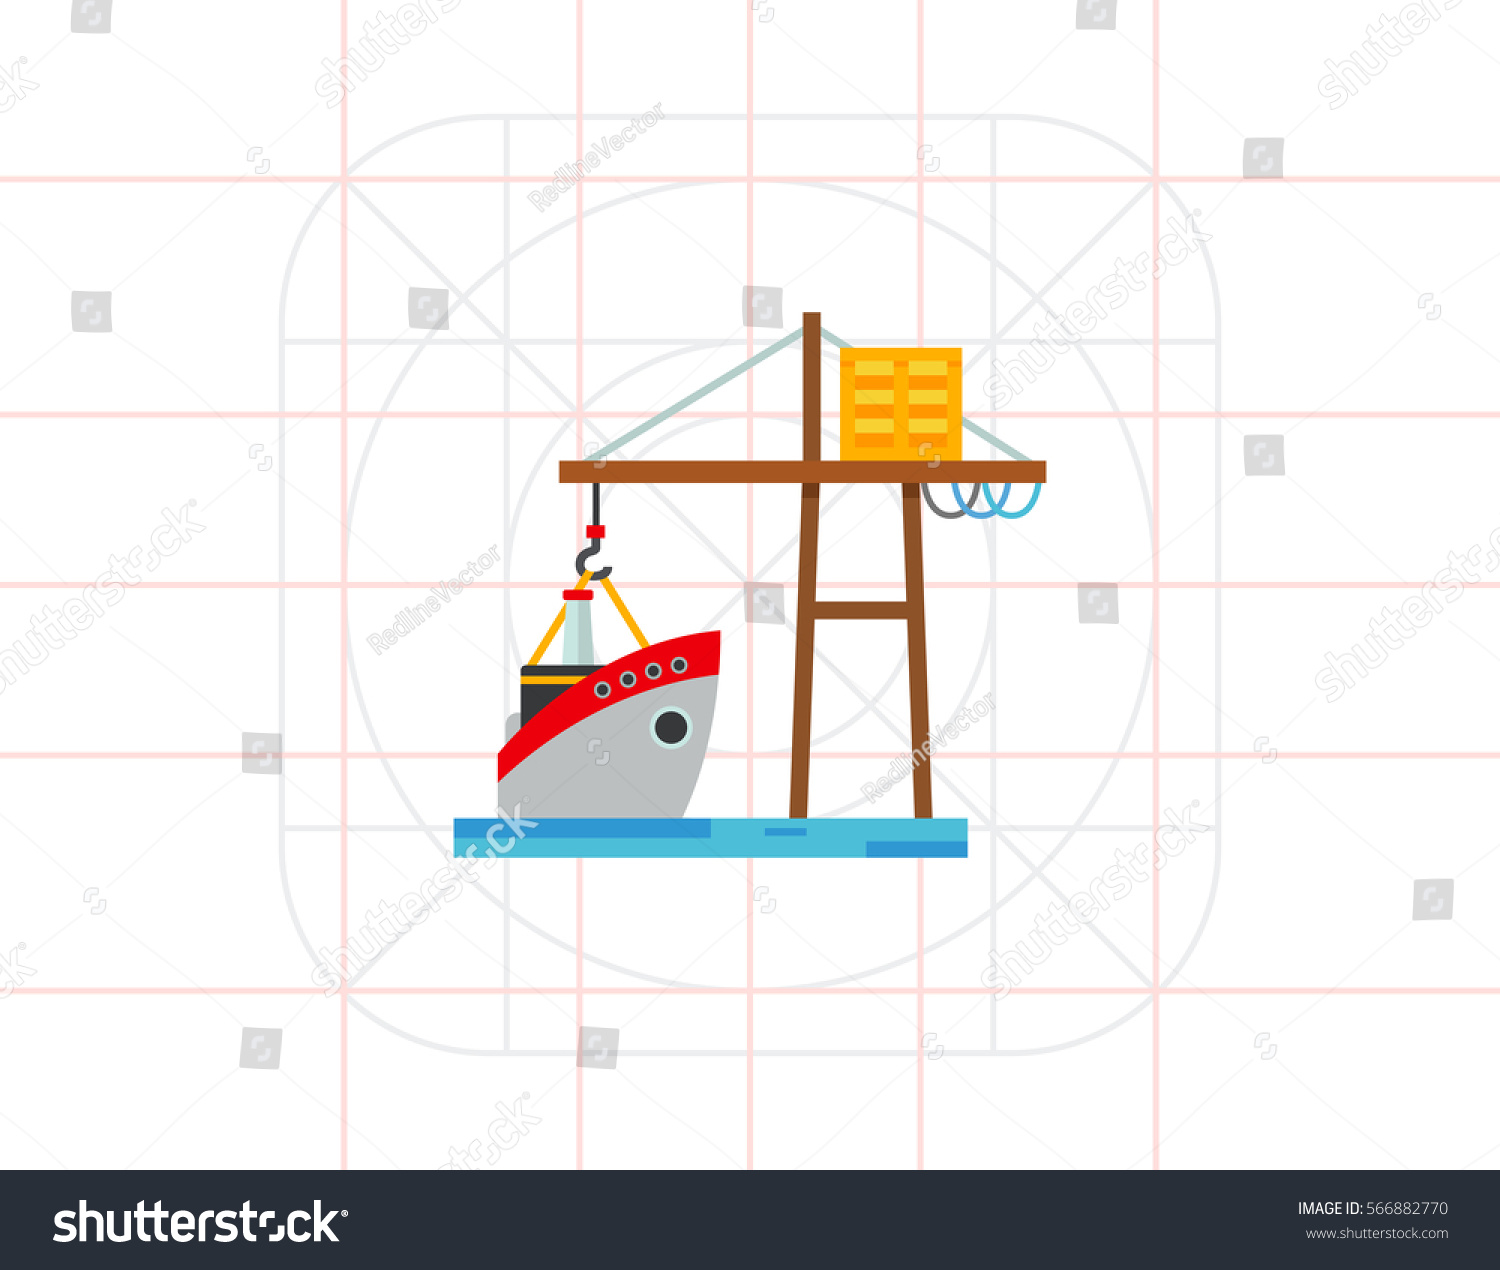 hight resolution of logistic ship and crane icon